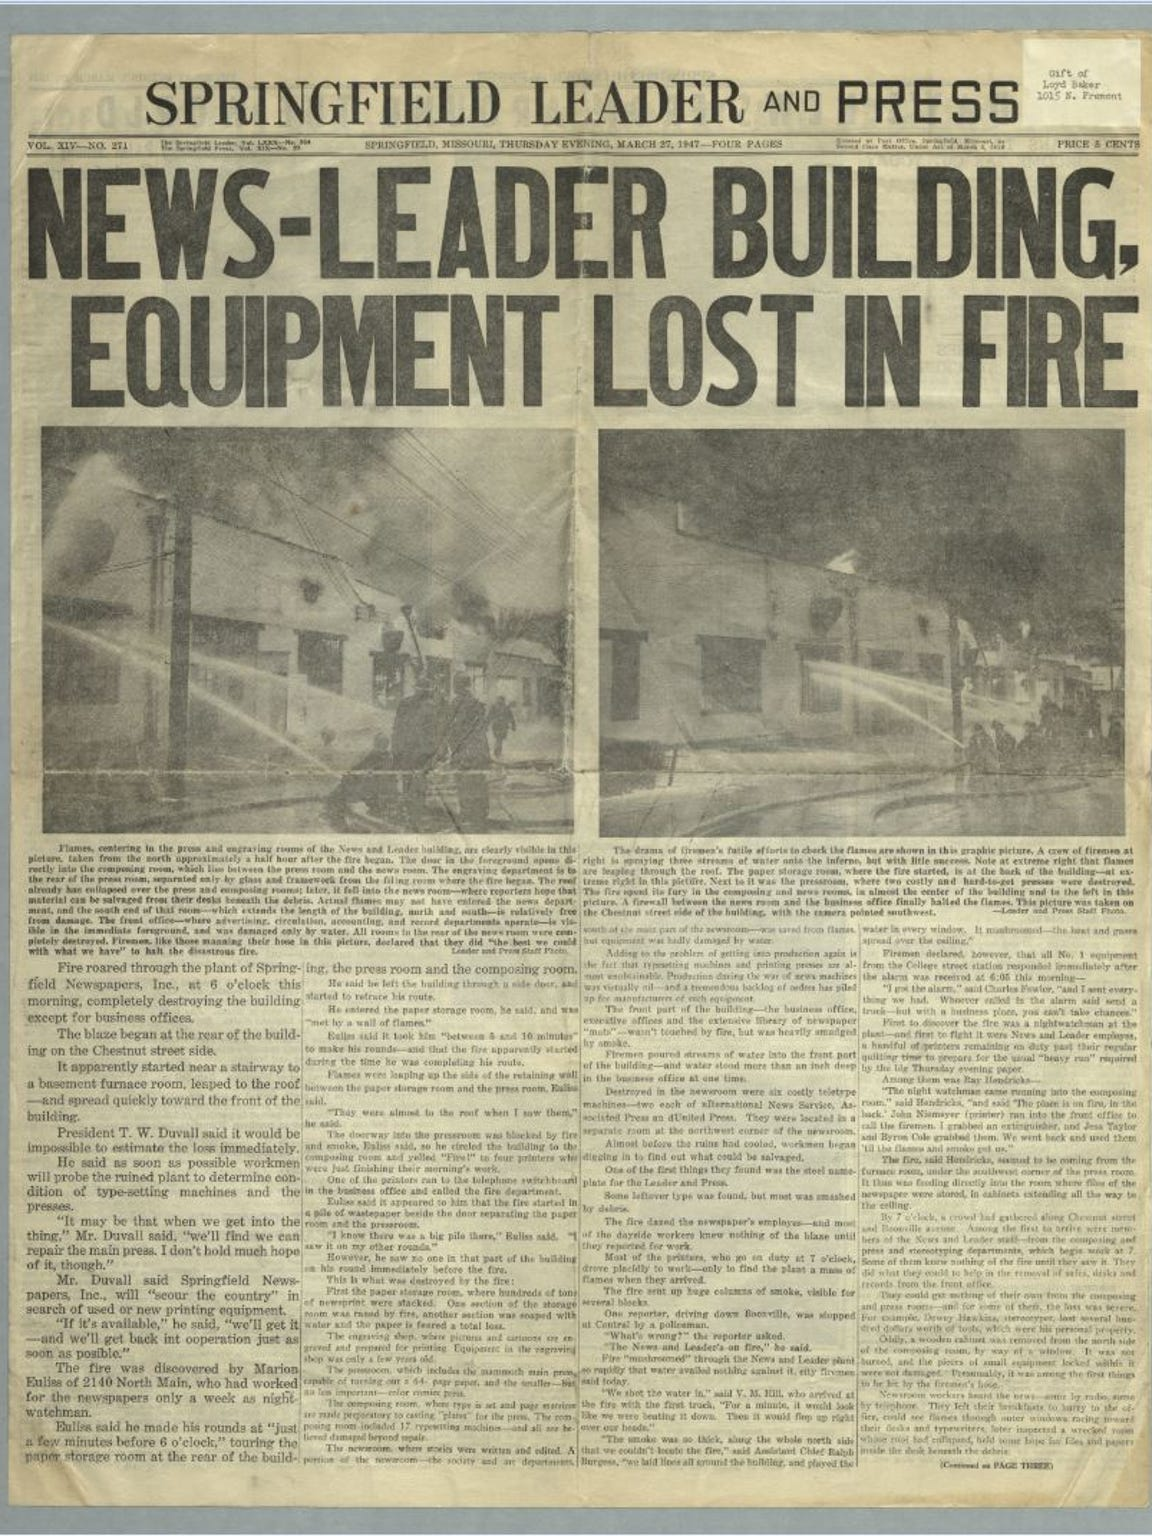 March 27, 1947 edition of the Leader and Press.